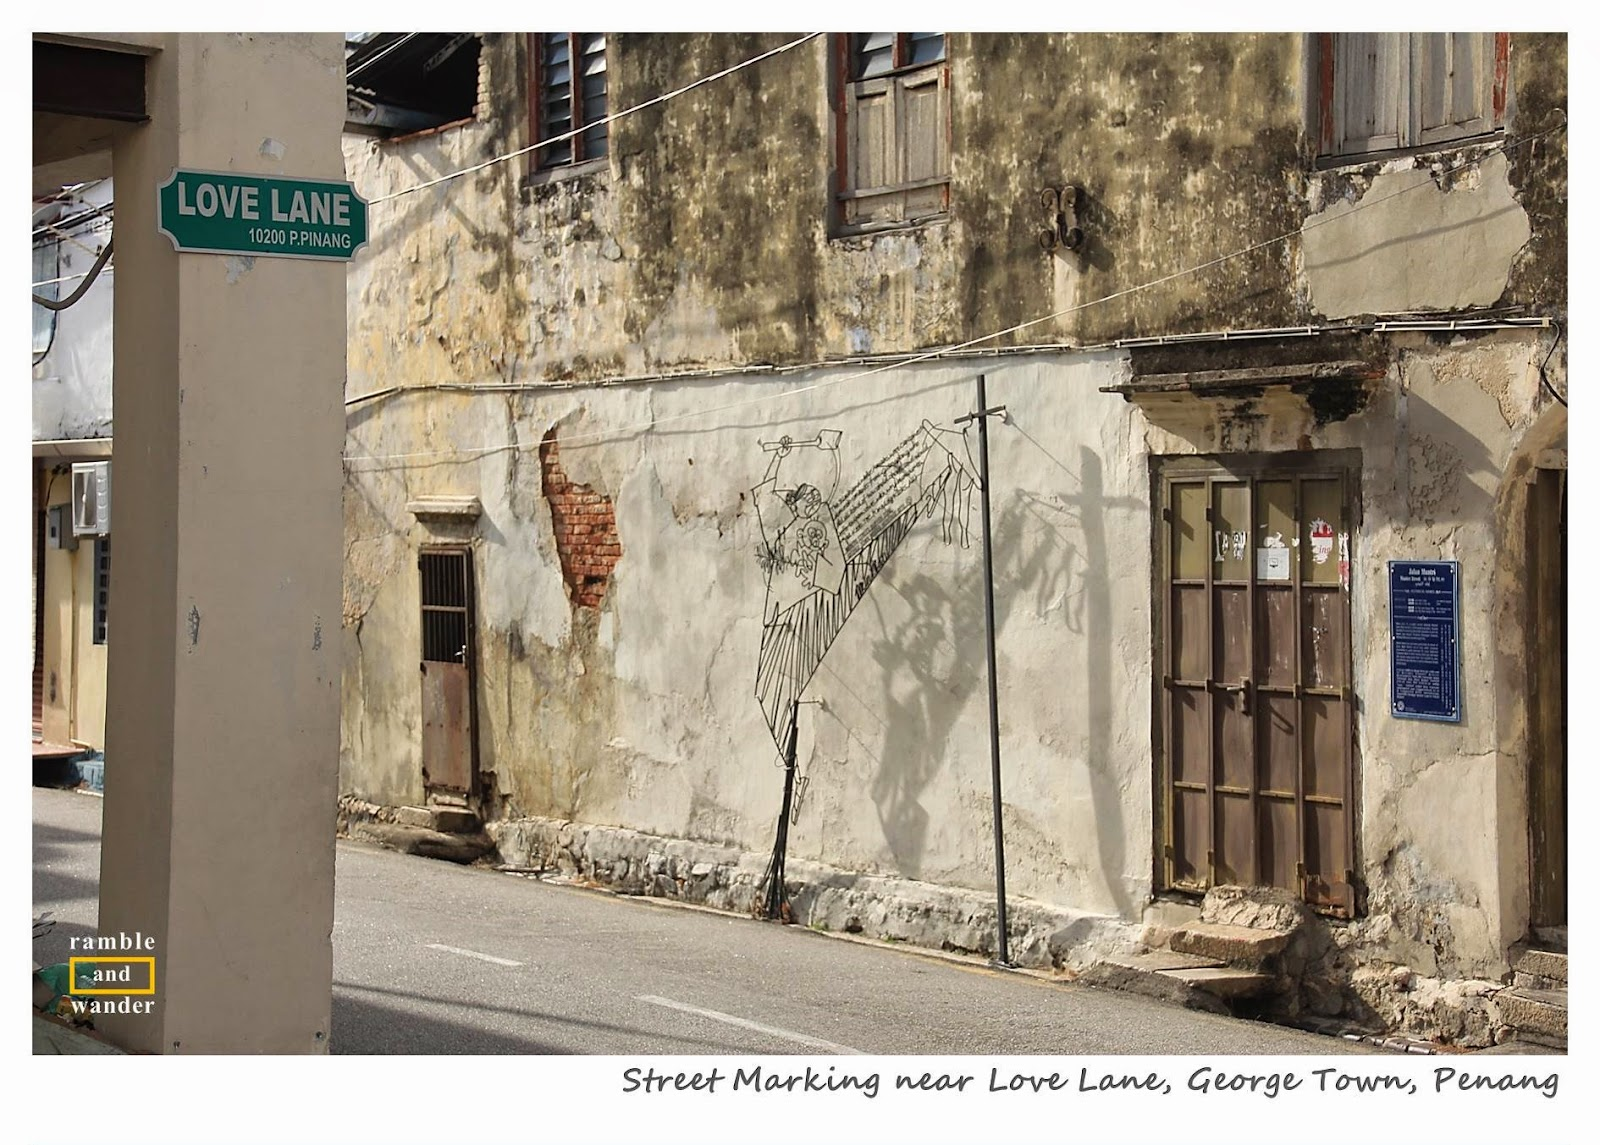 George Town Penang Street Art - Ramble and Wander